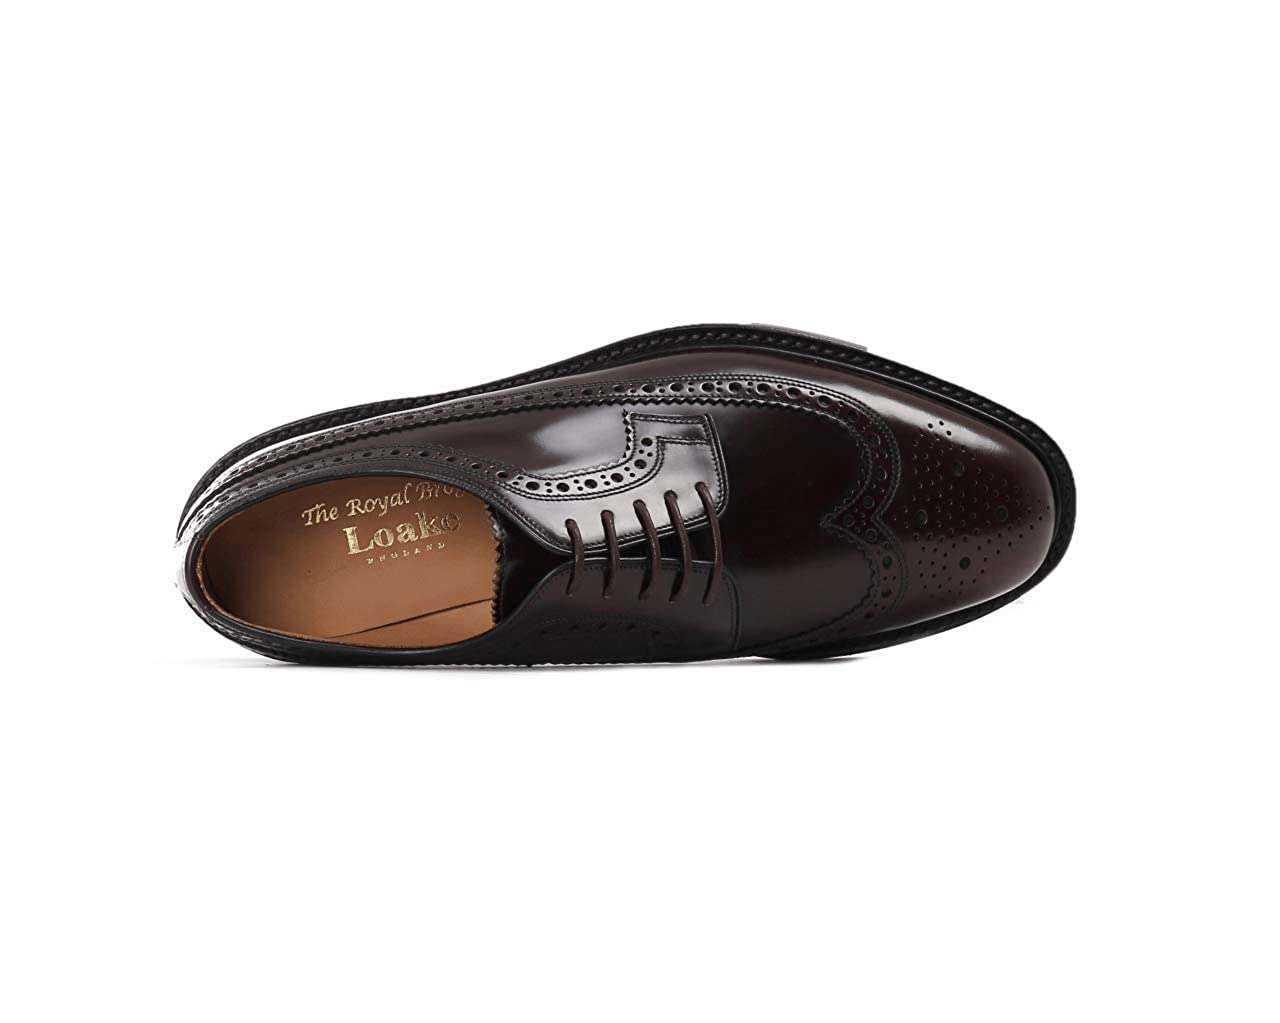 loake STRINGATA UOMO LOAKE ROYAL BROGUE DERBY BURGUNDY